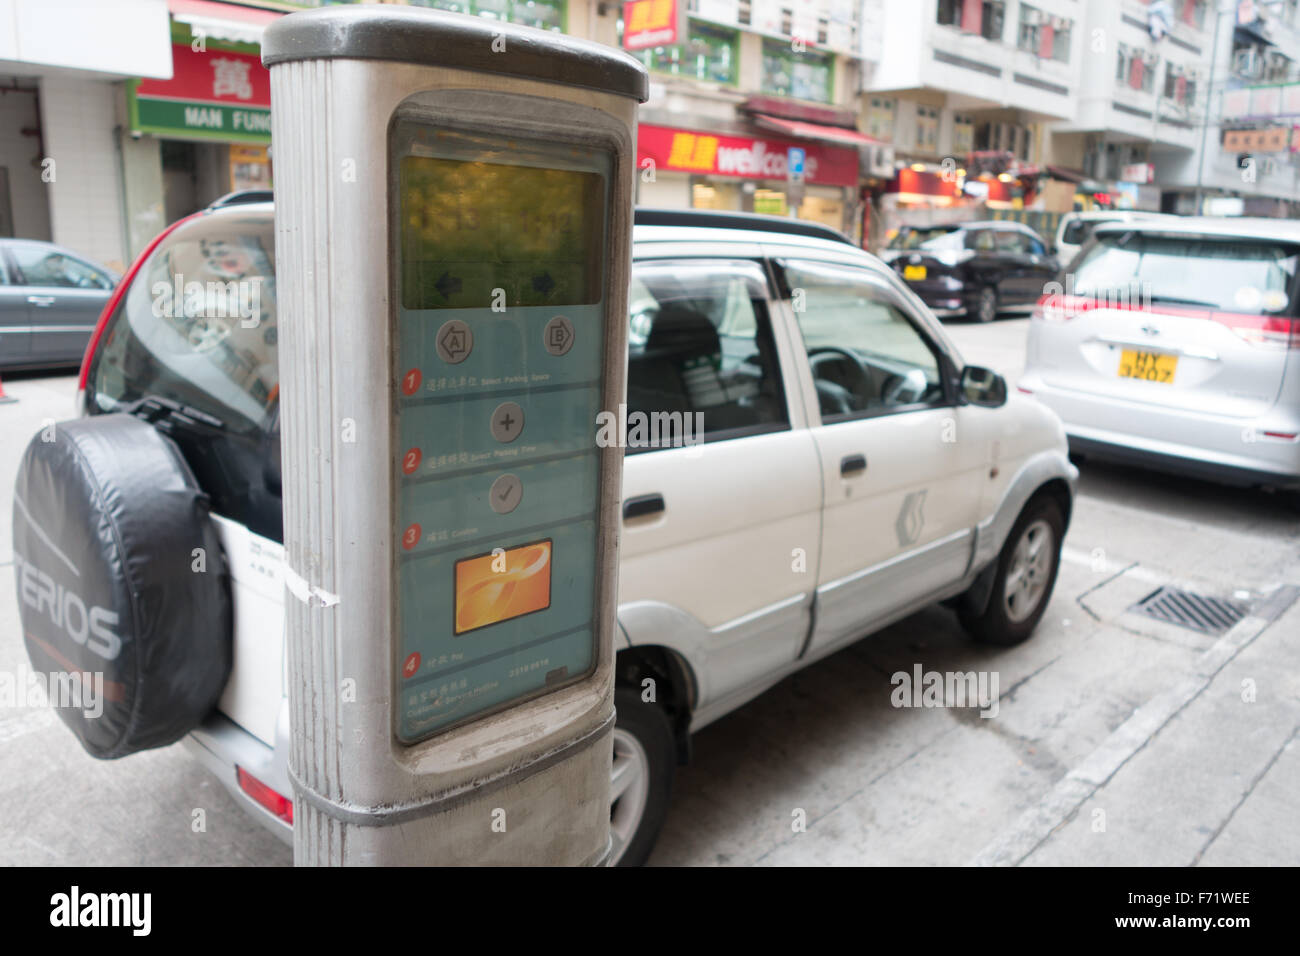 hong kong street parking meter - Stock Image